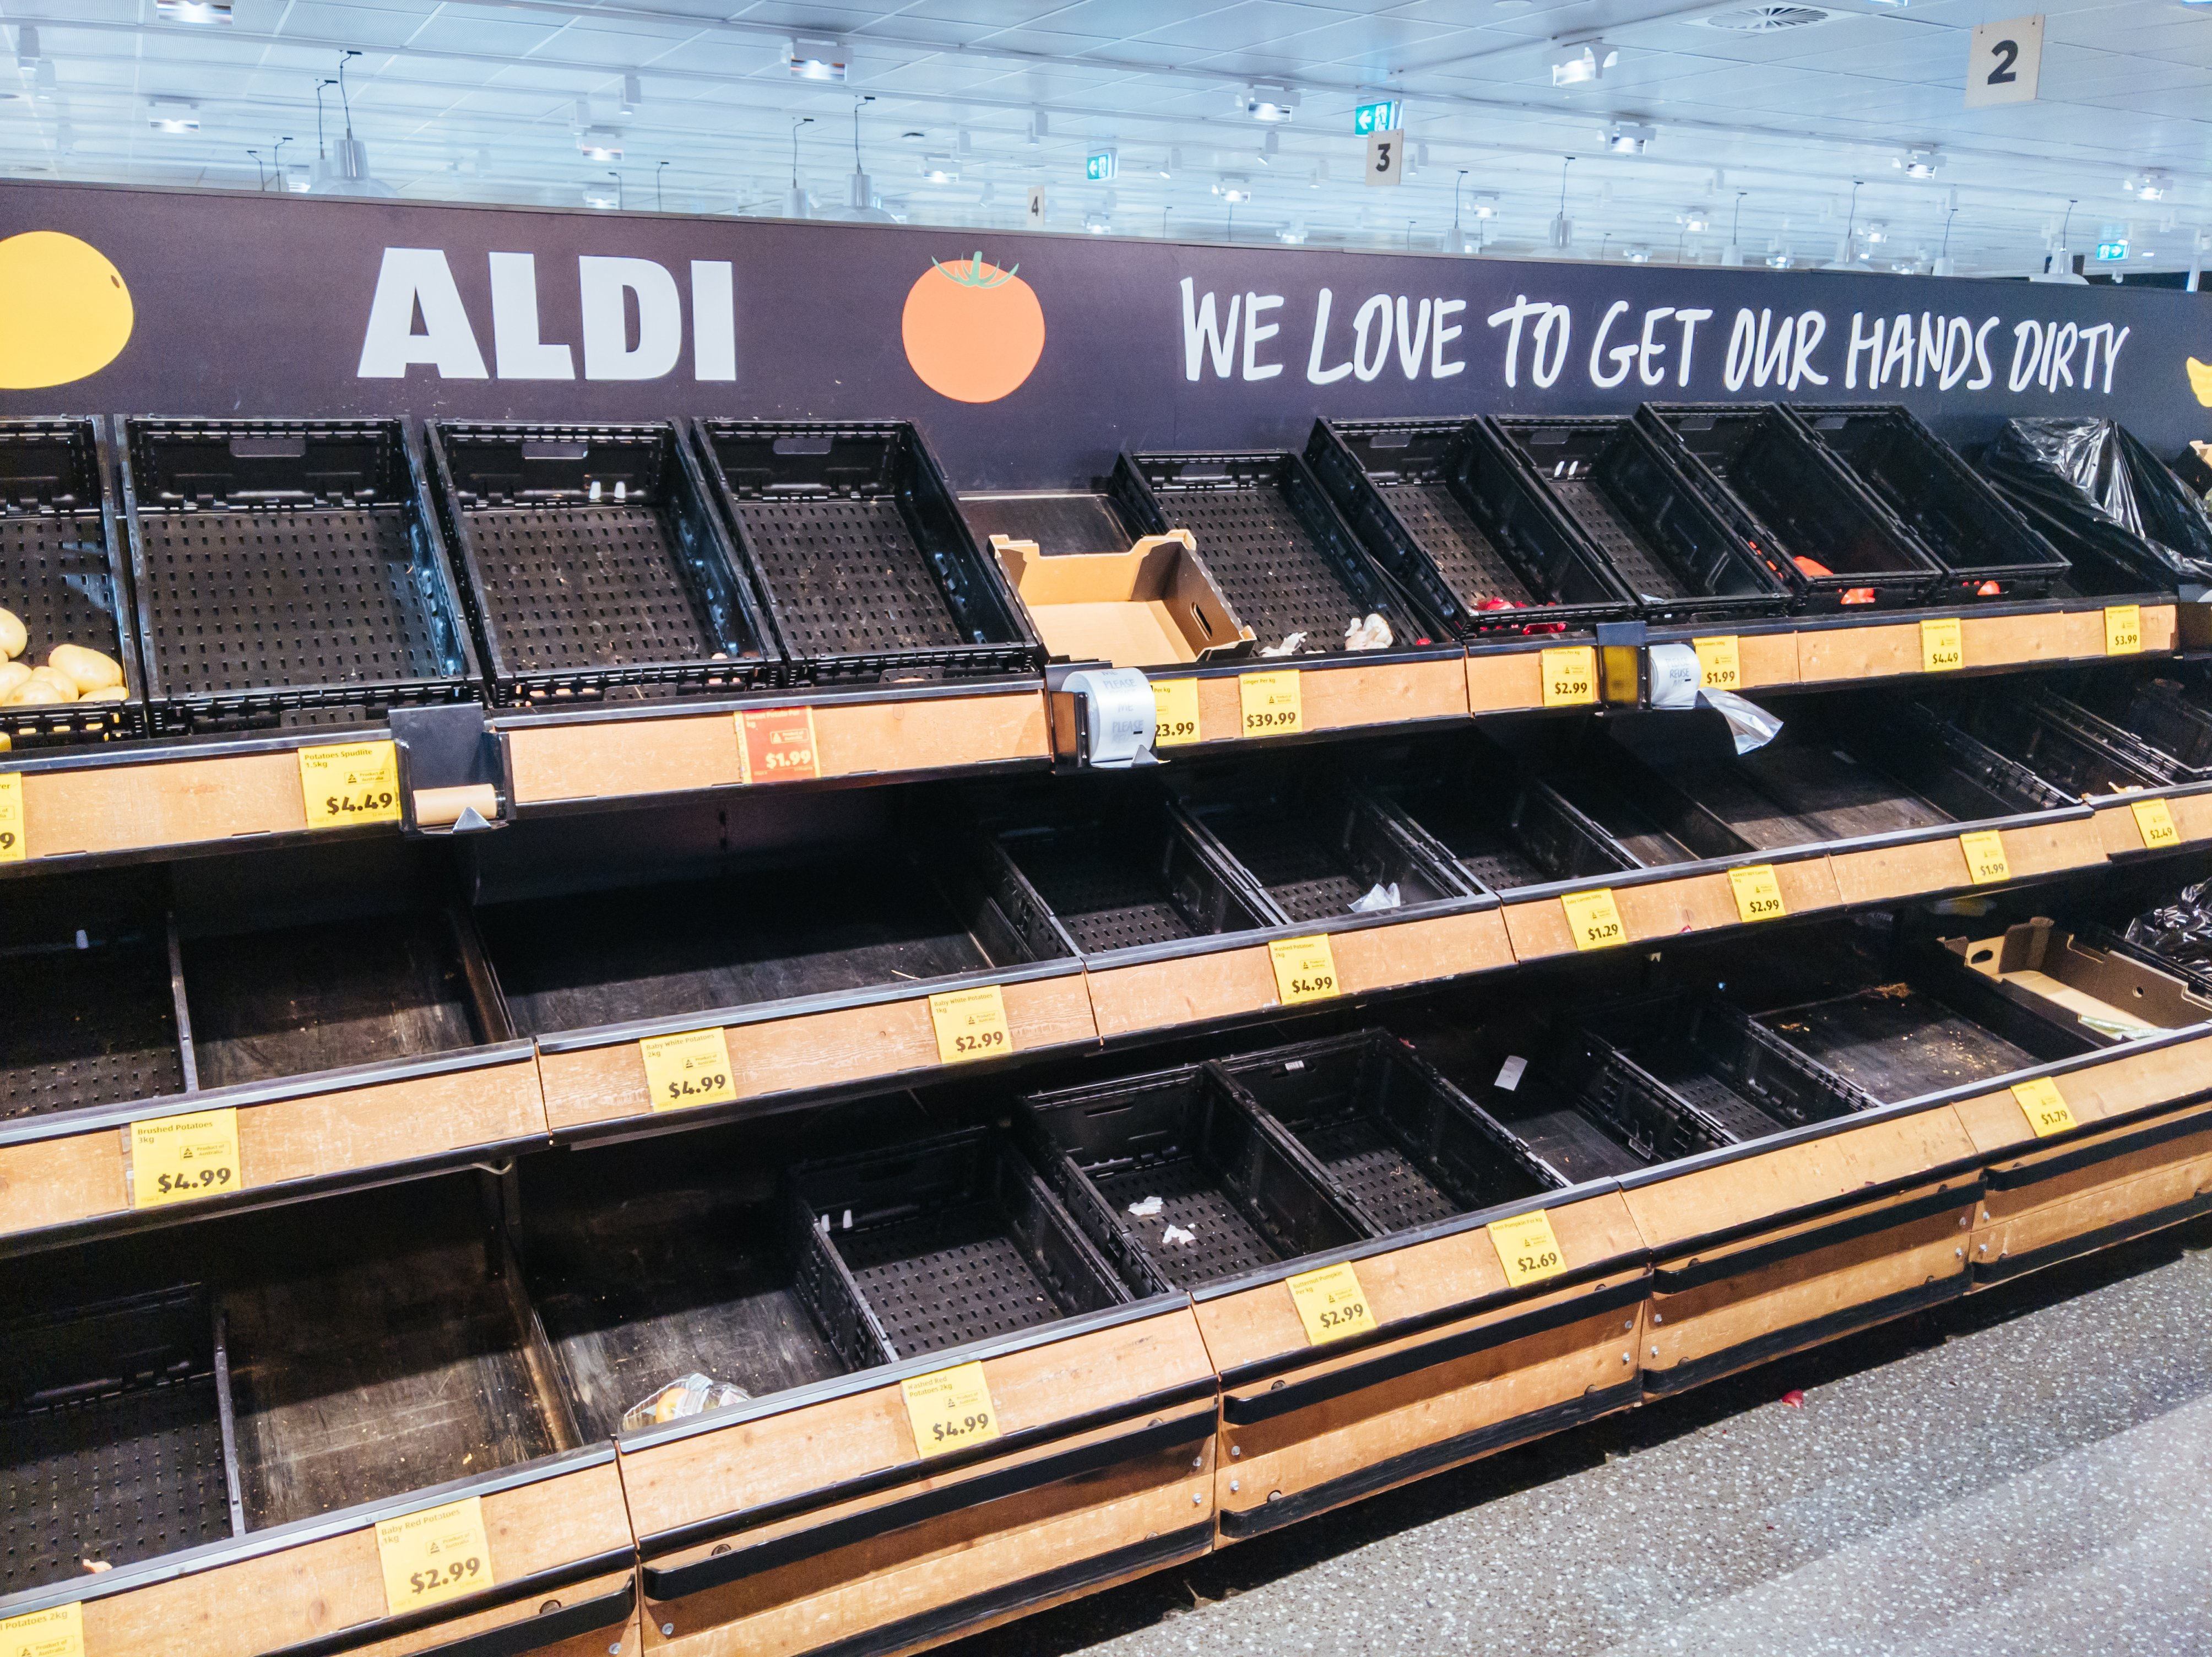 Empty shelves became a view across many Aldi Supermarkets throughout the pandemic. | Photo: Getty Images.